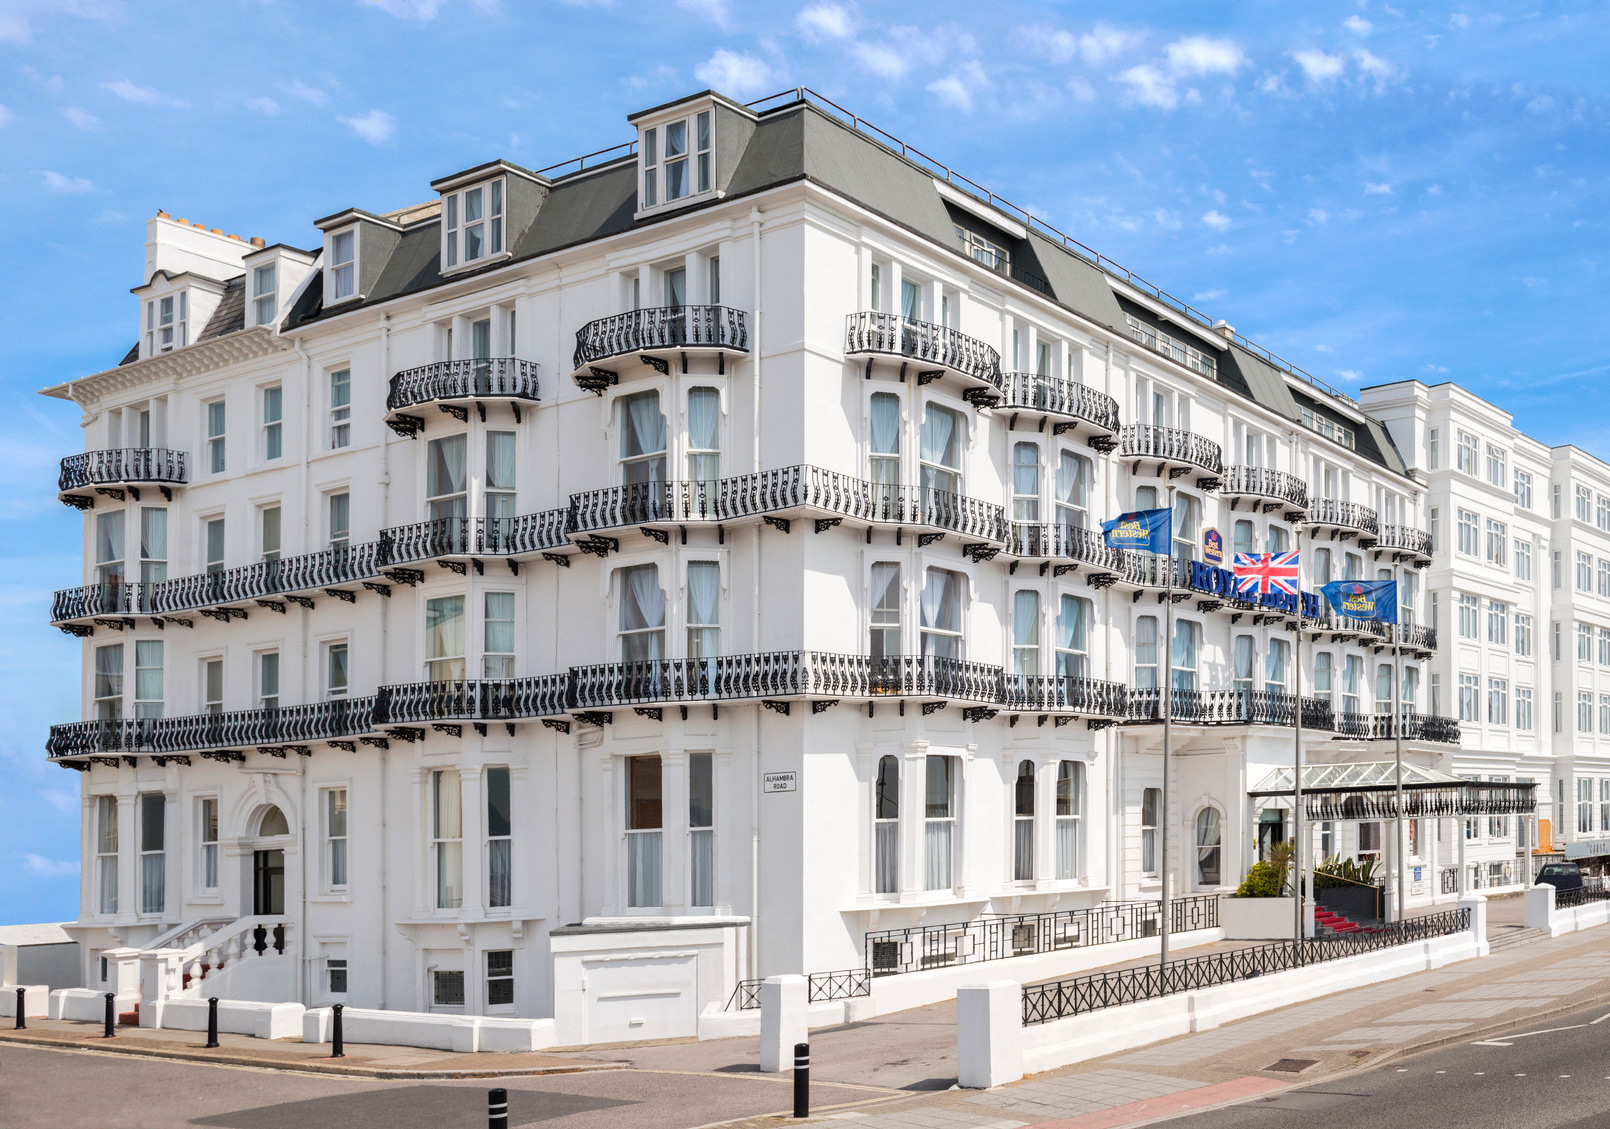 The Royal Beach Hotel Portsmouth